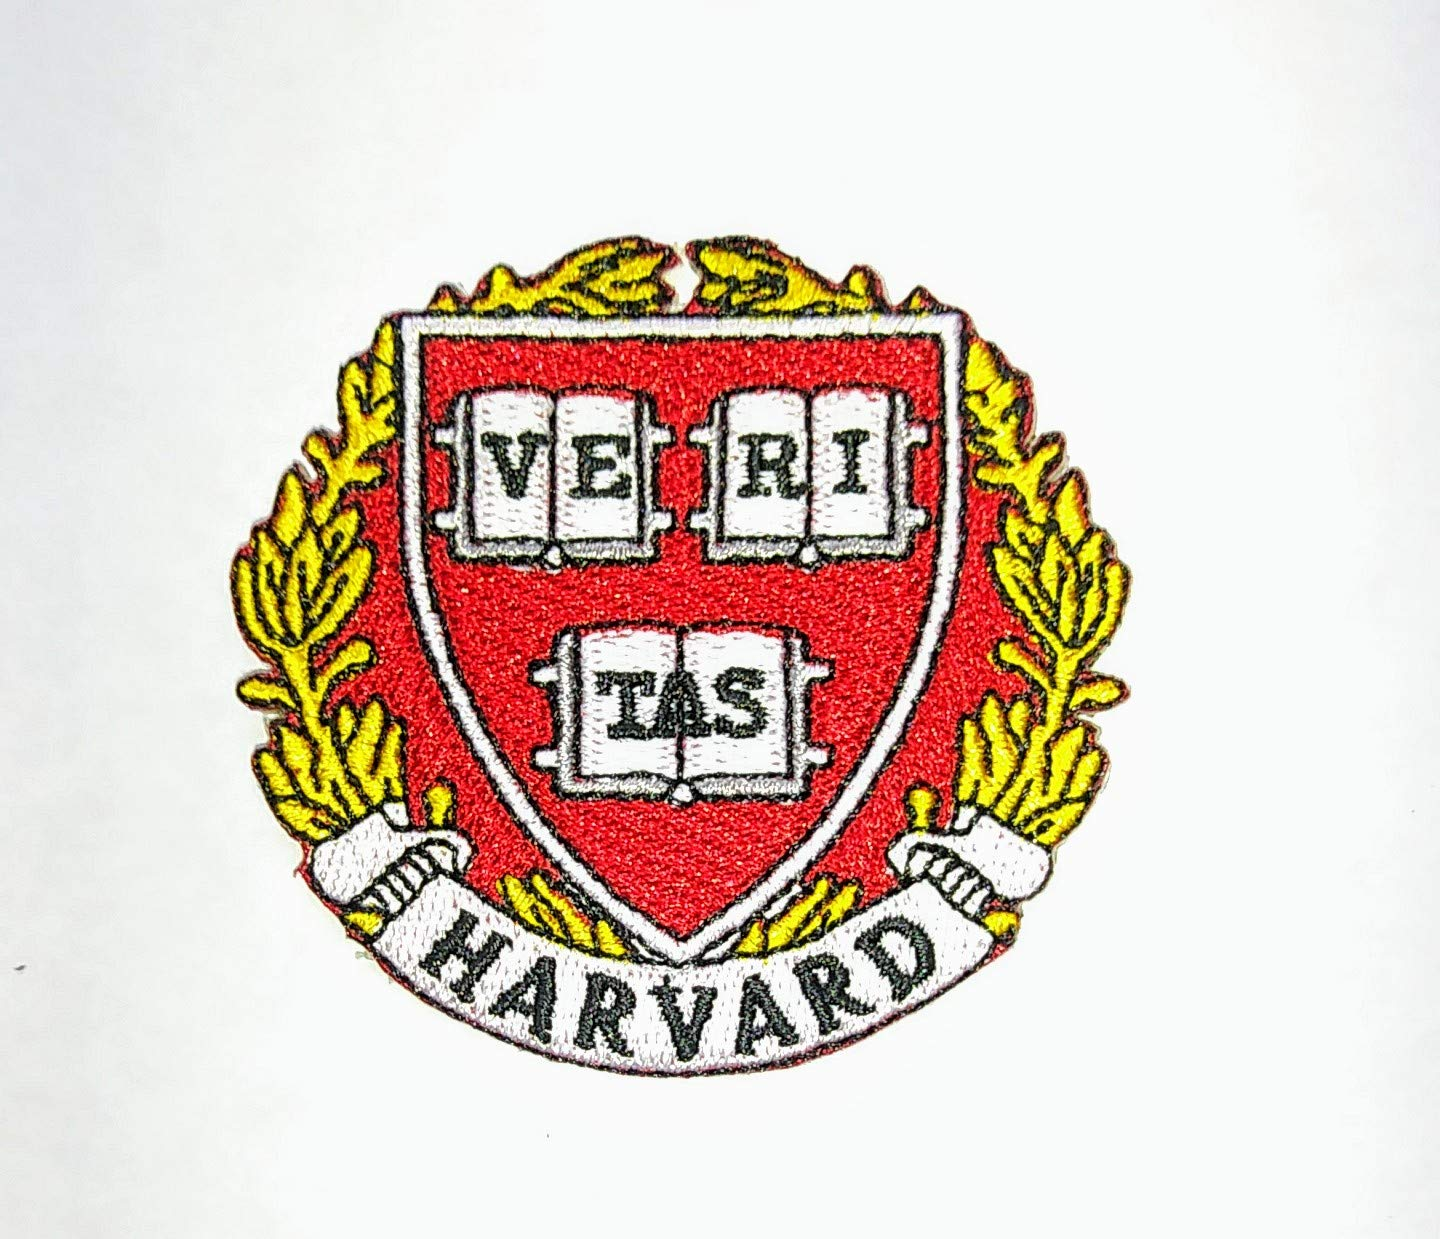 HARVARD Portland Mall CRIMSON IRON ON EMBROIDERED PATCH EMBROIDERY Max 67% OFF SCH PATCHES